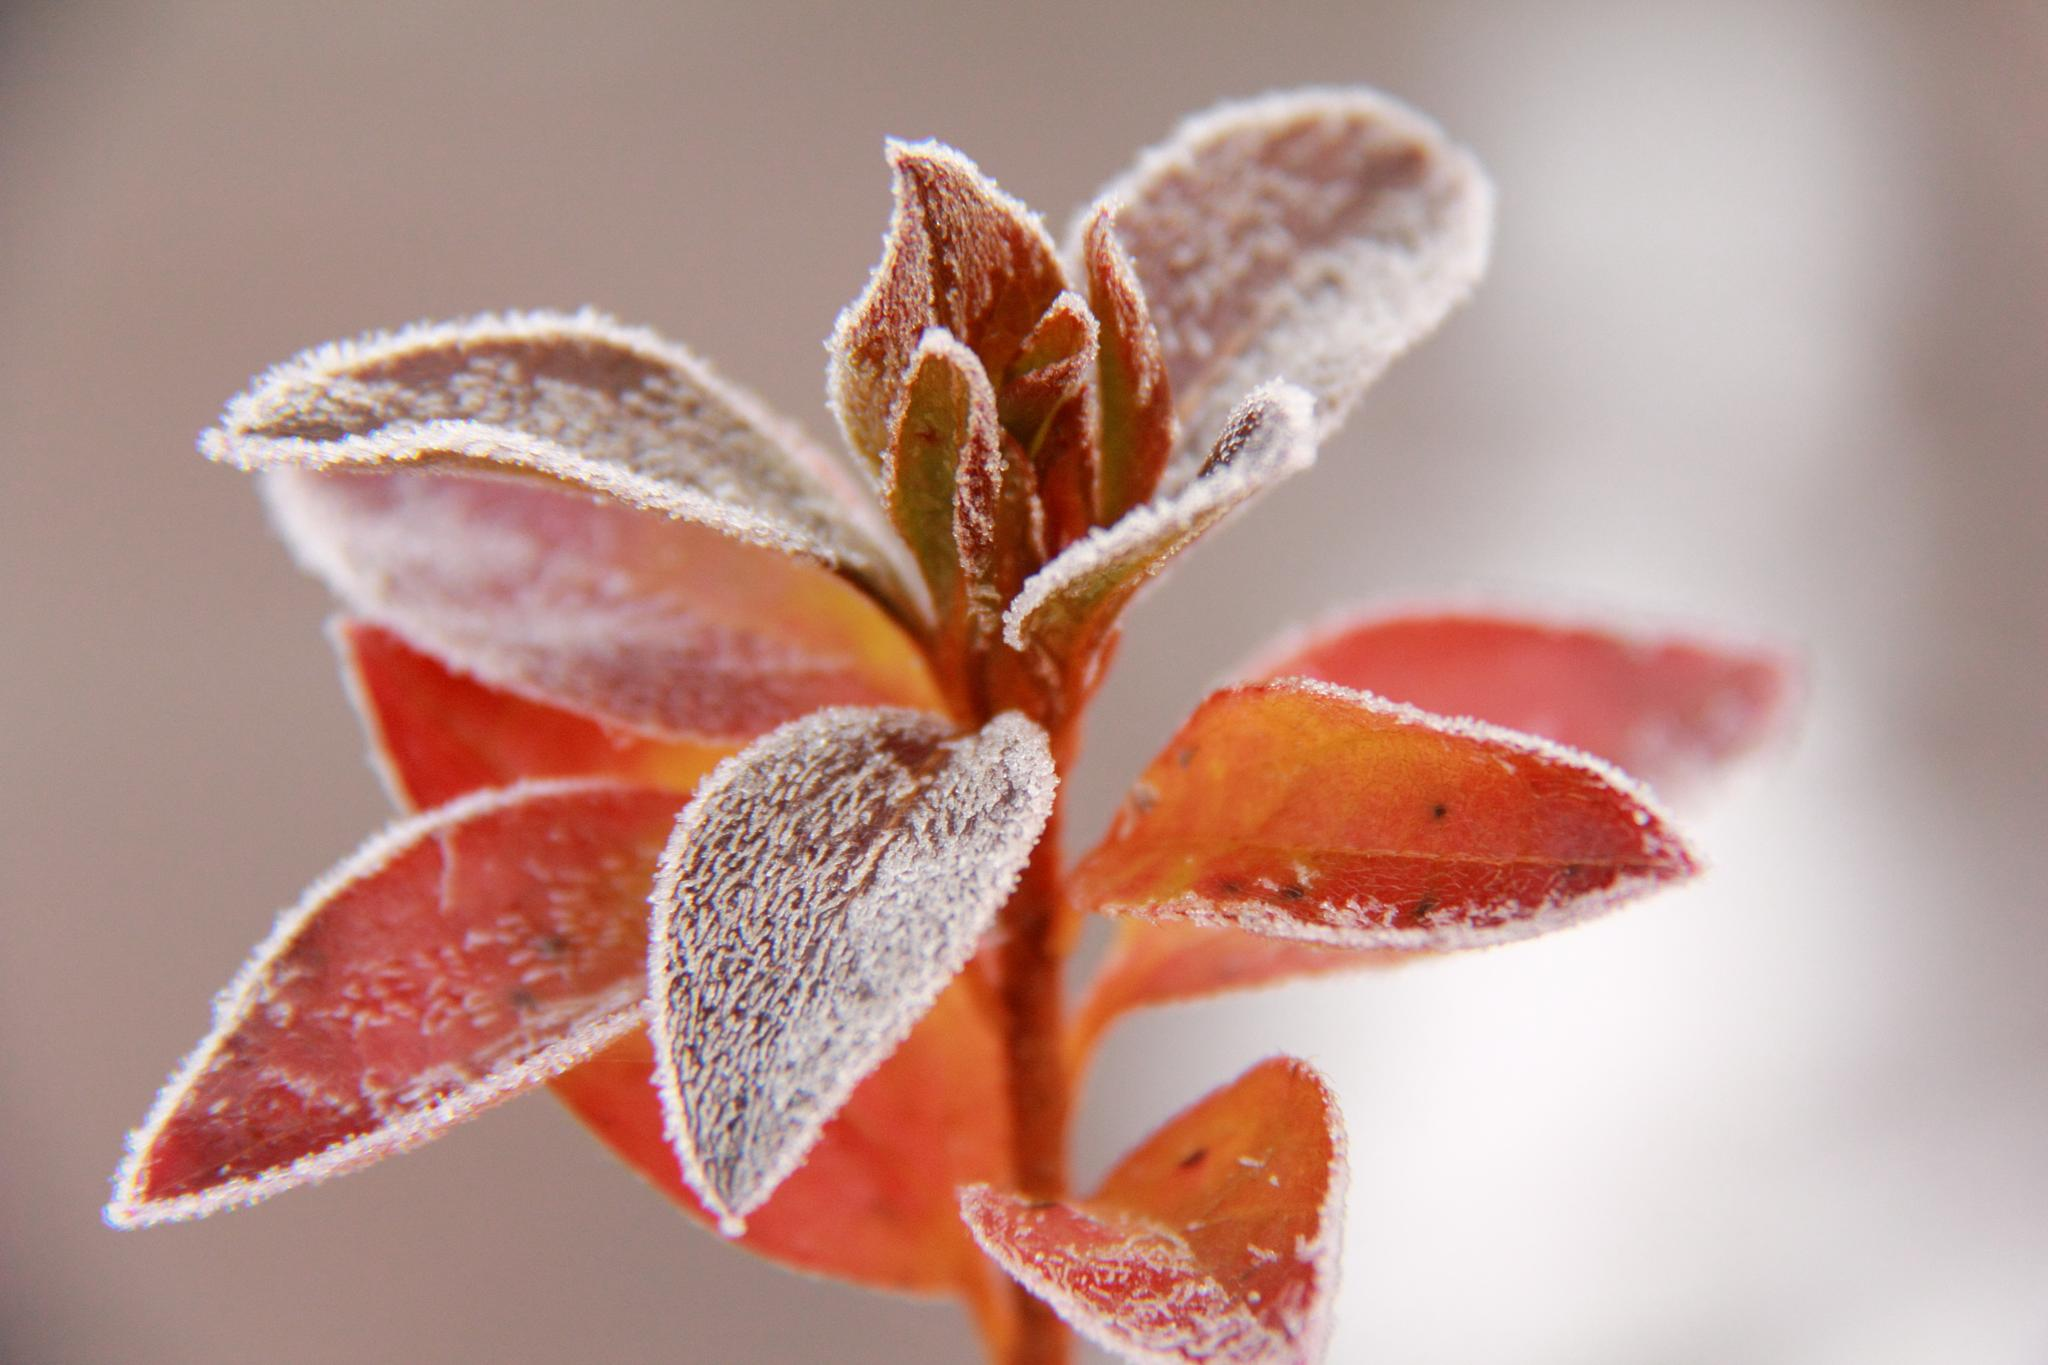 First Frost by michelle.vinnacombe